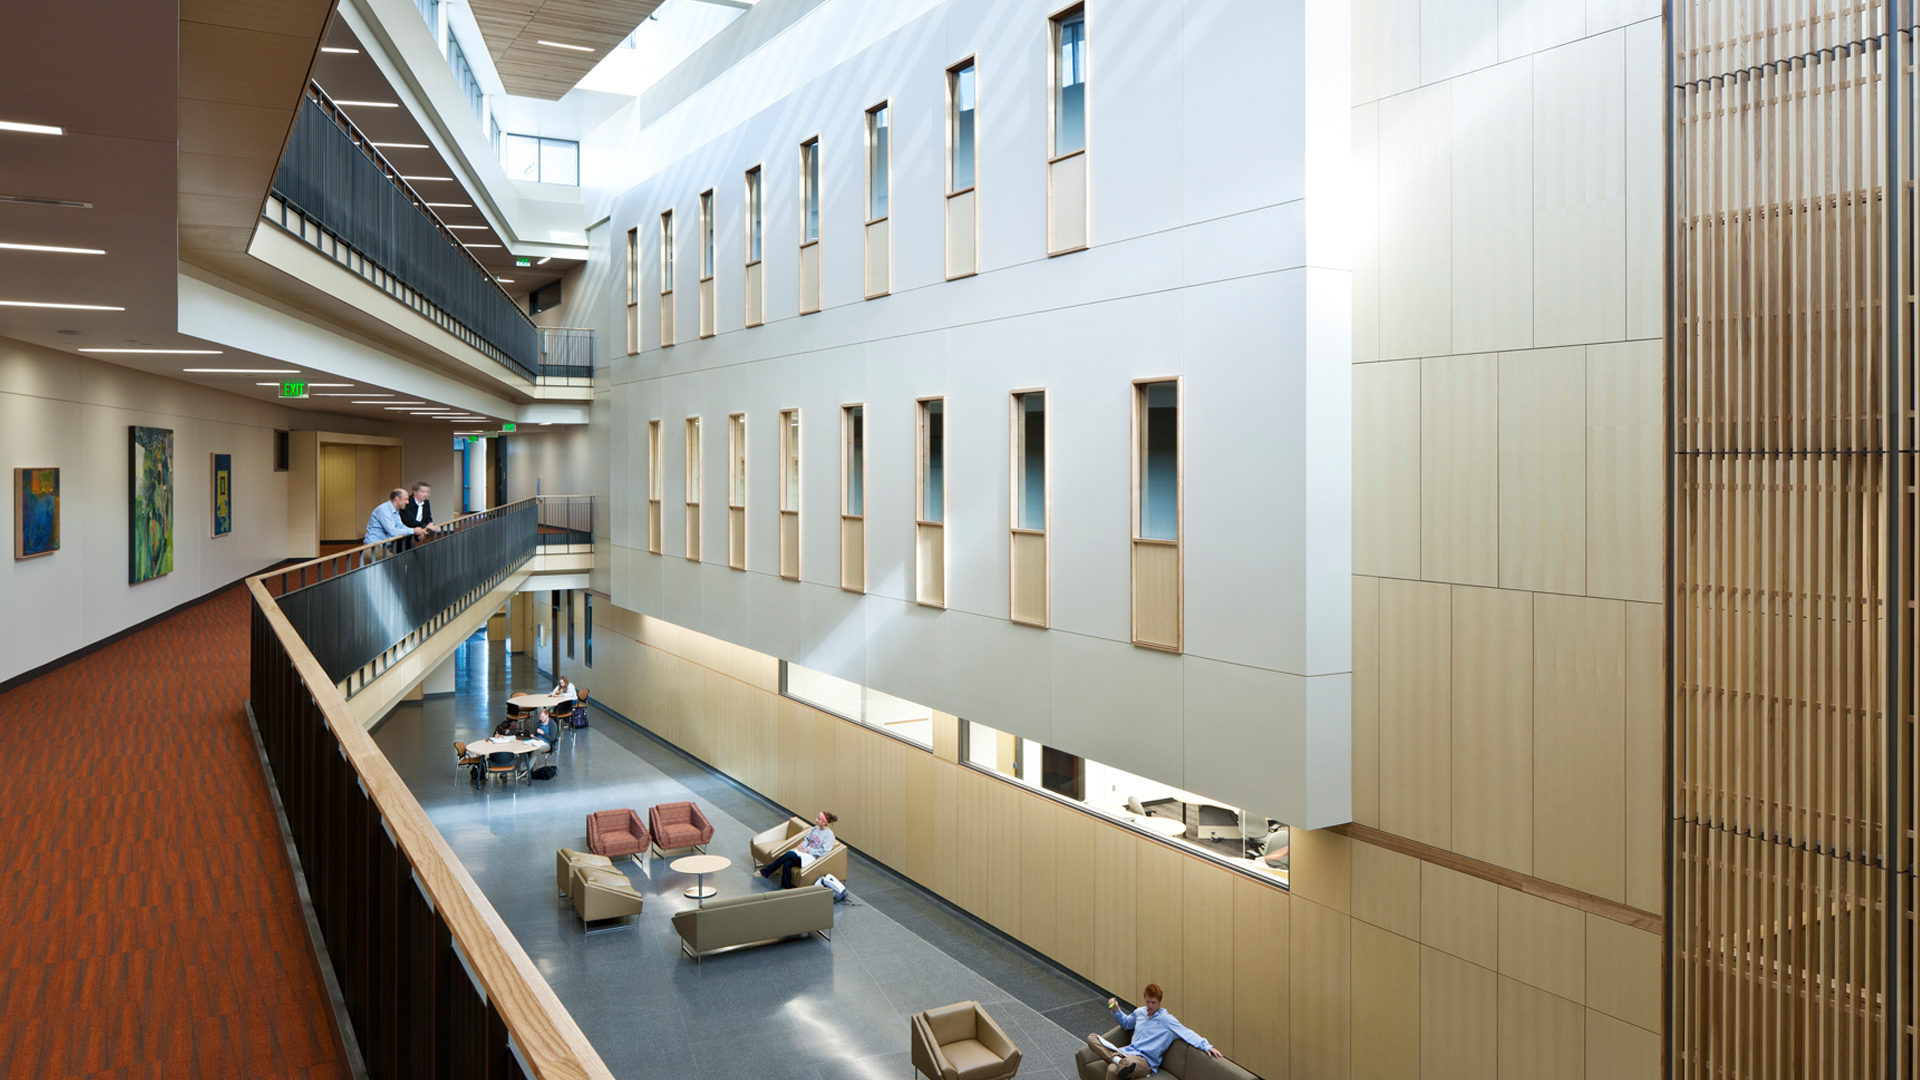 Gustavus Adolphus College Beck Academic Hall Overlooking Interior Lobby Shot from Second Floor